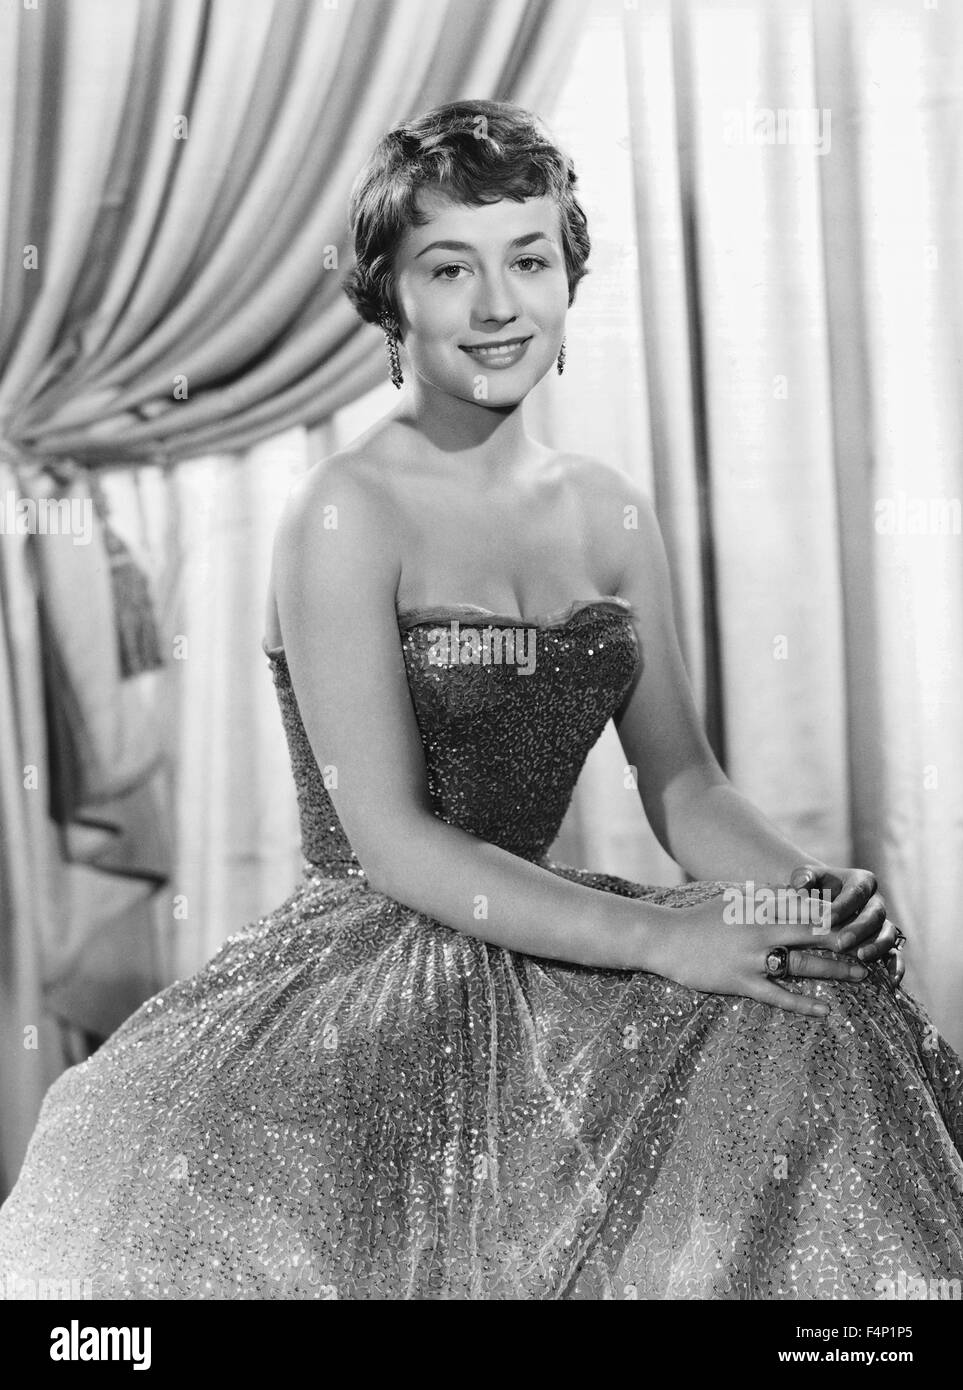 Annie Girardot / L'homme aux clefs d'or 1956 directed by Leo Joannon - Stock Image